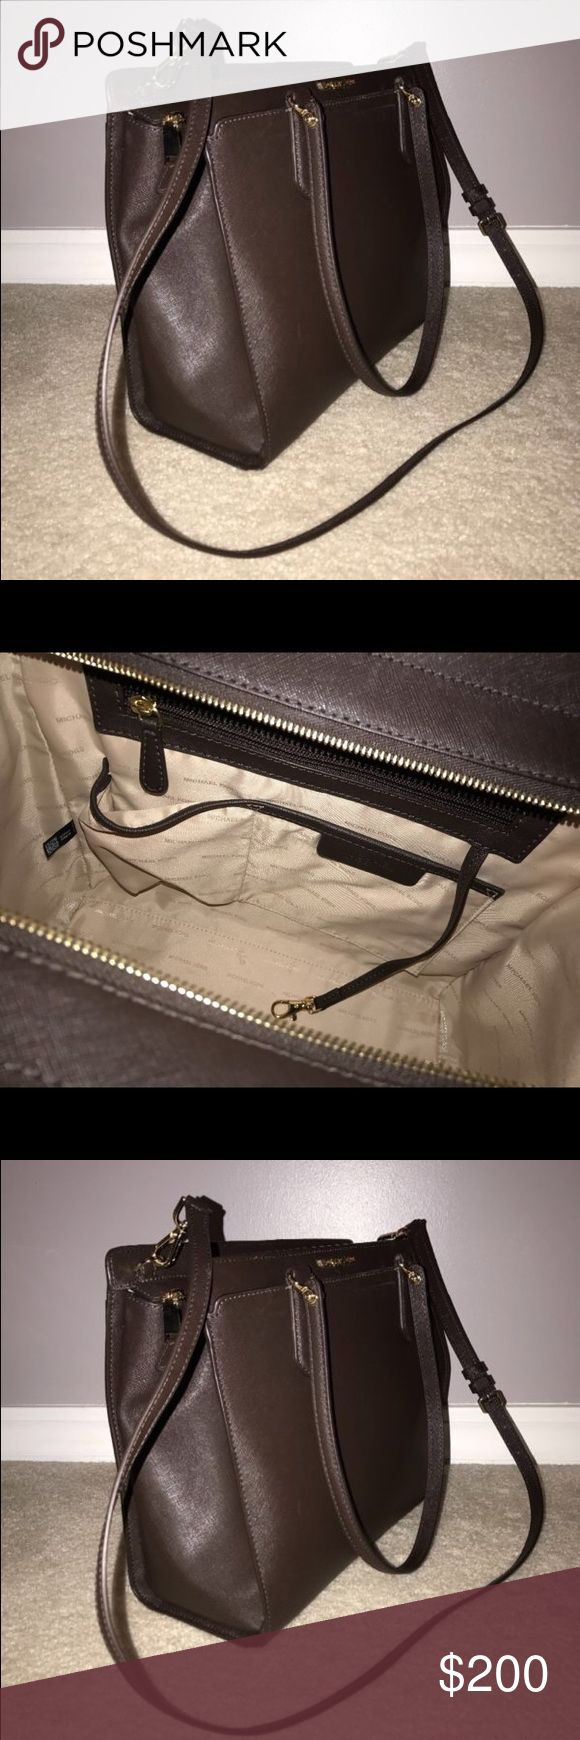 Micheal Kors handbag Large dark brown hangbag with gold detailing and a short as well as a long strap Michael Kors Bags Totes